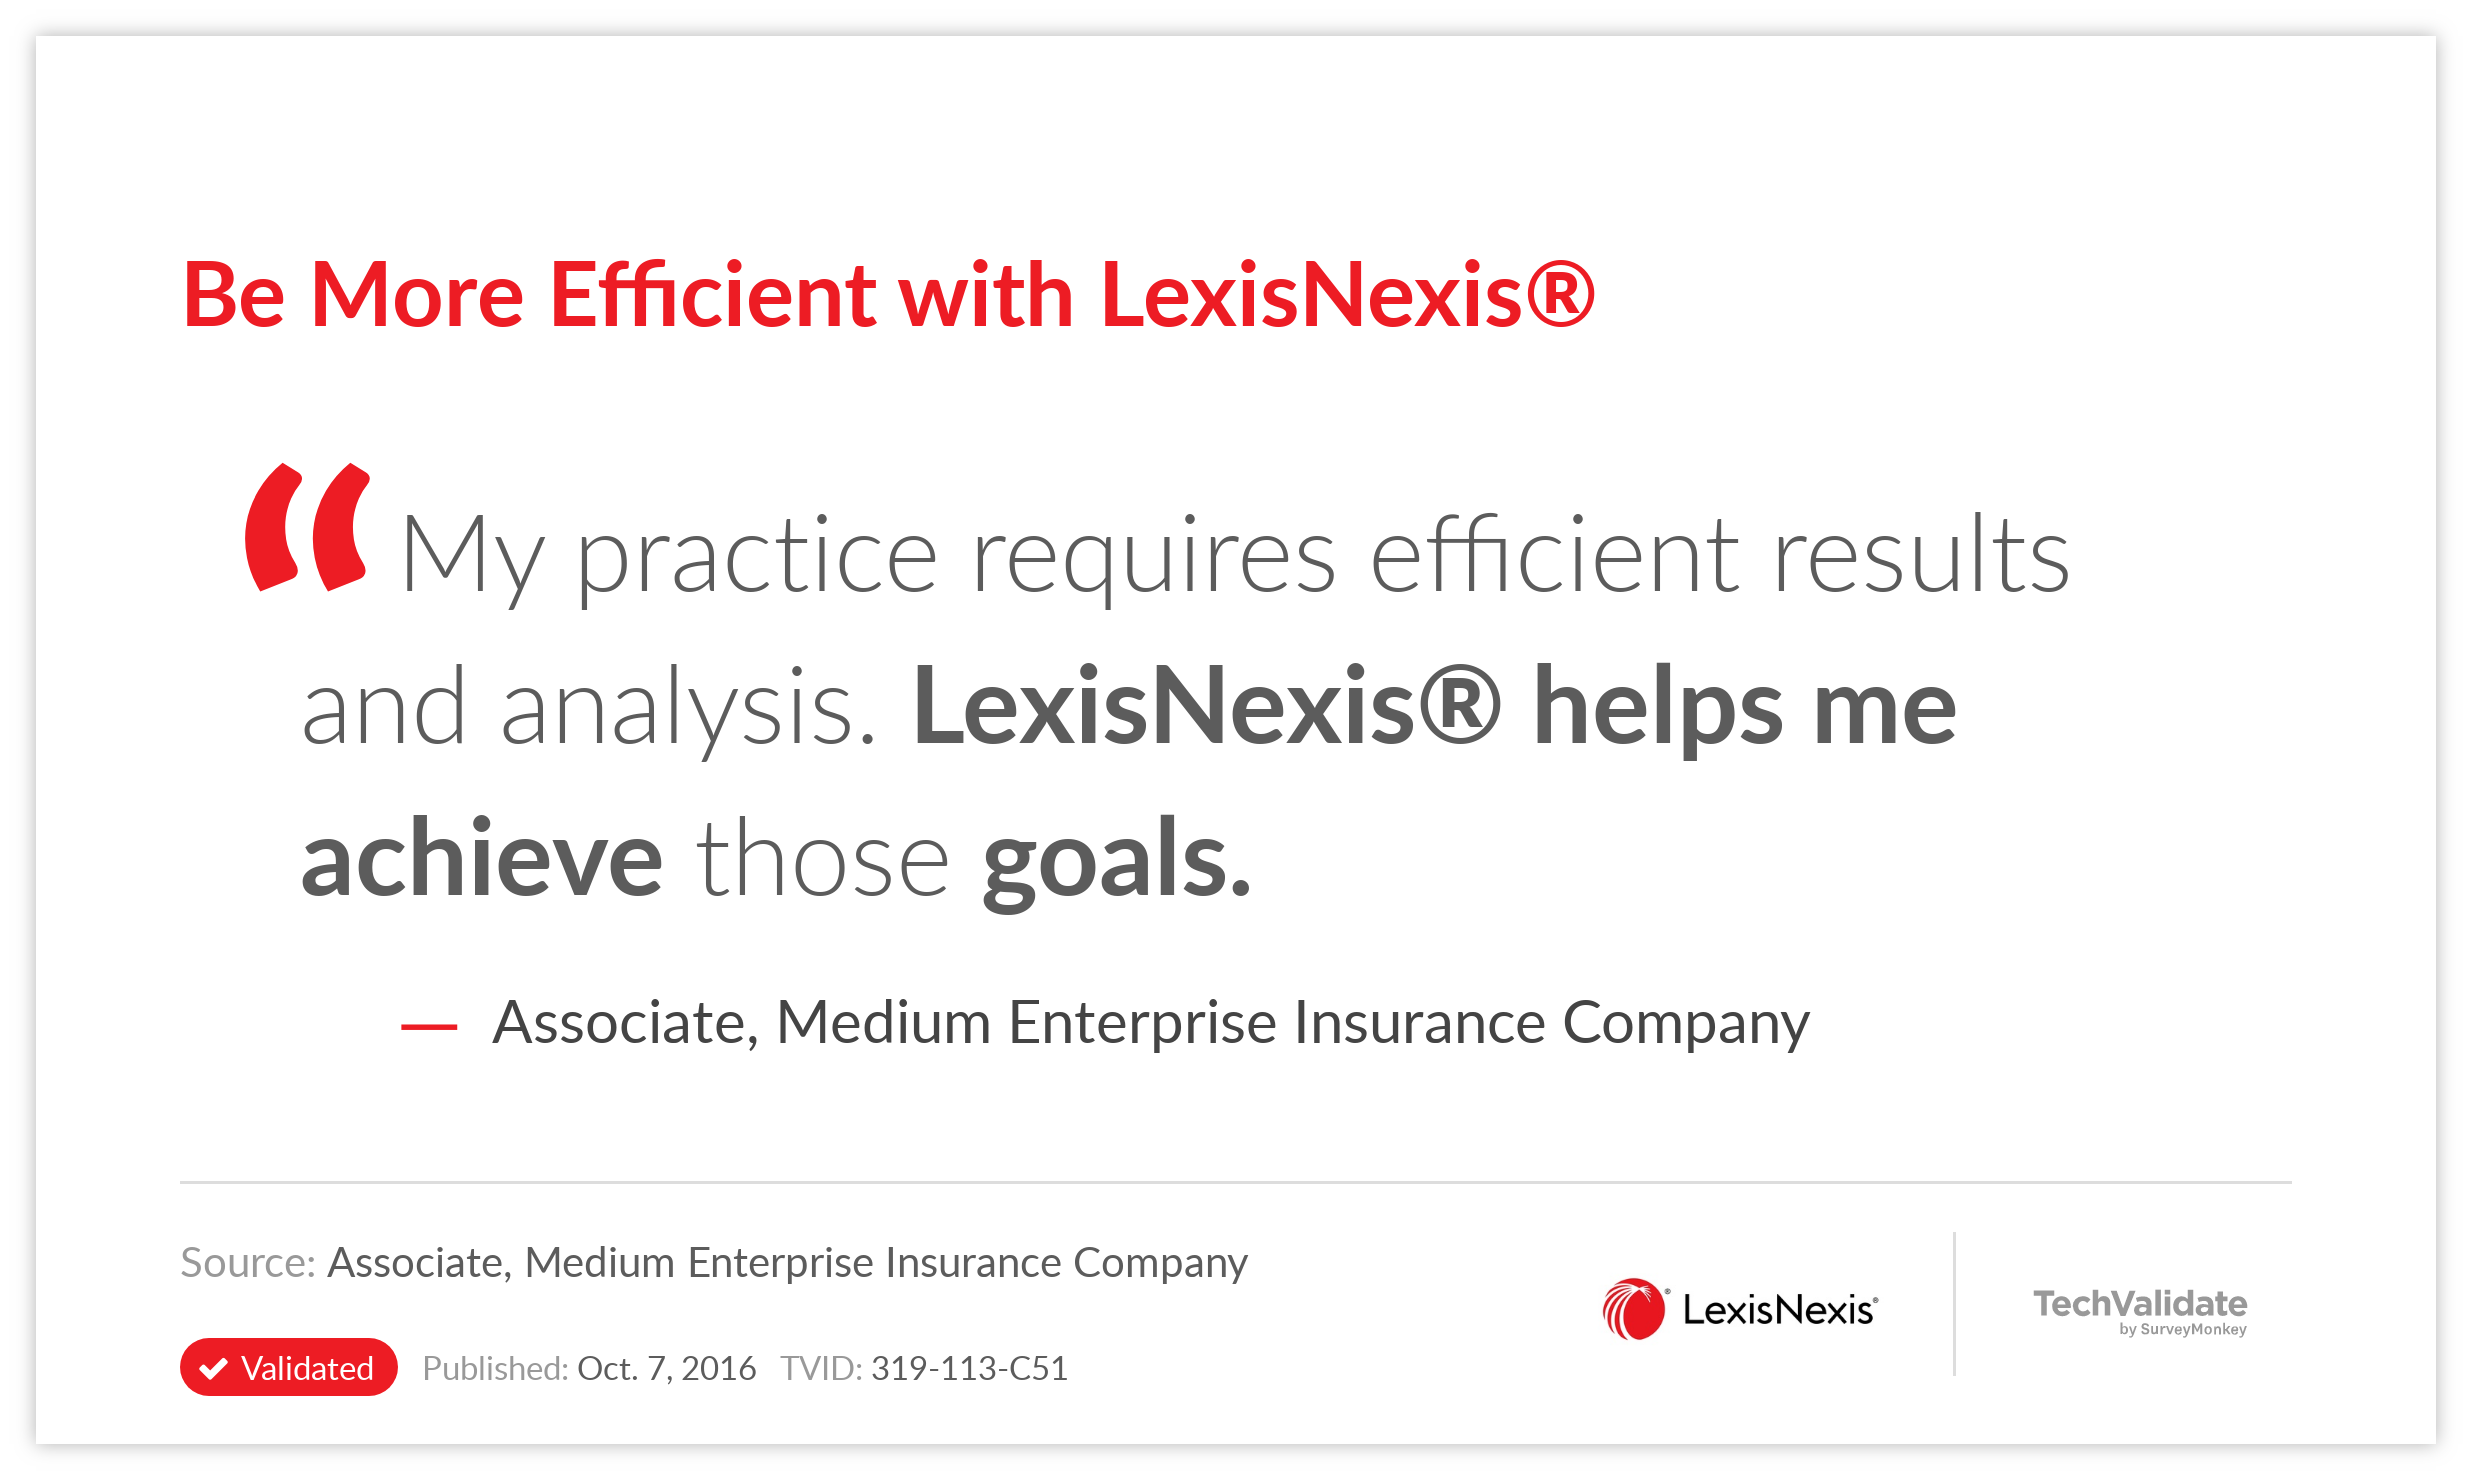 Be More Efficient with LexisNexis®